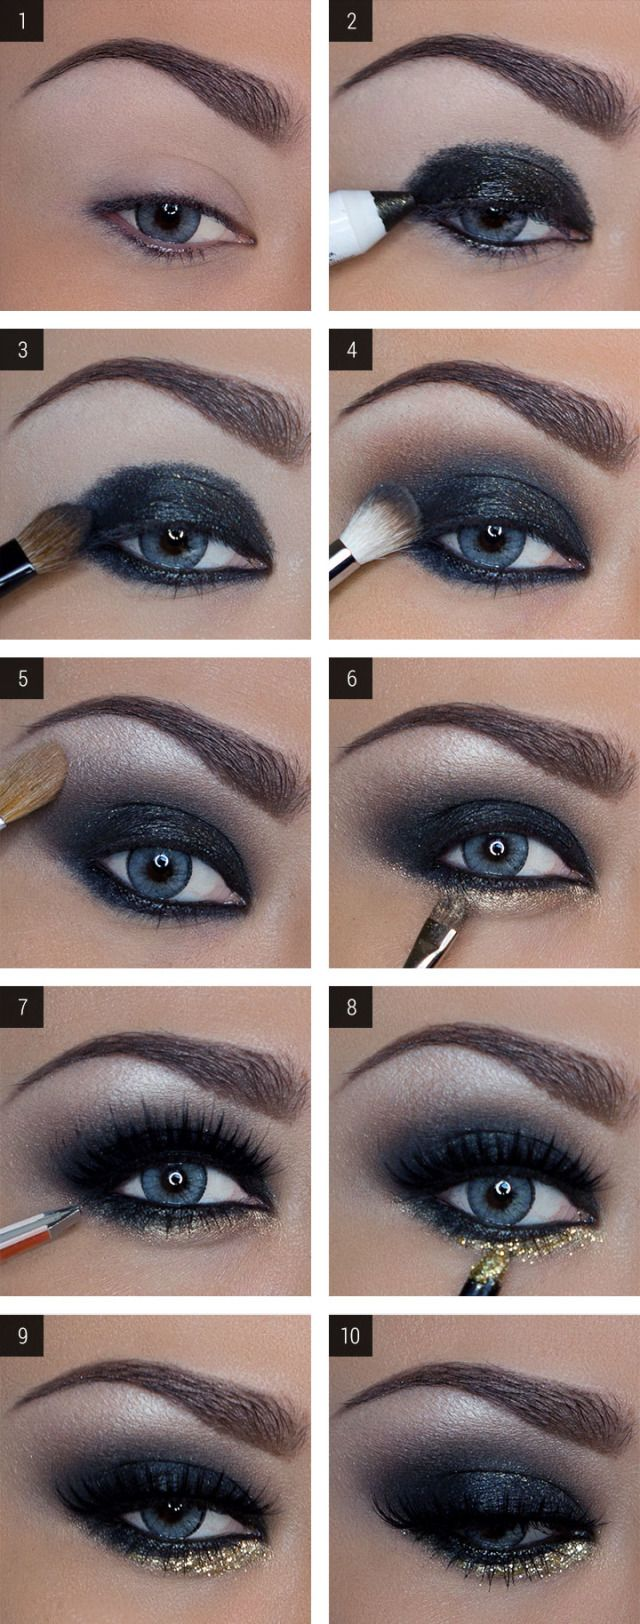 Learn how to do a glamorous eye shadow like a pro.